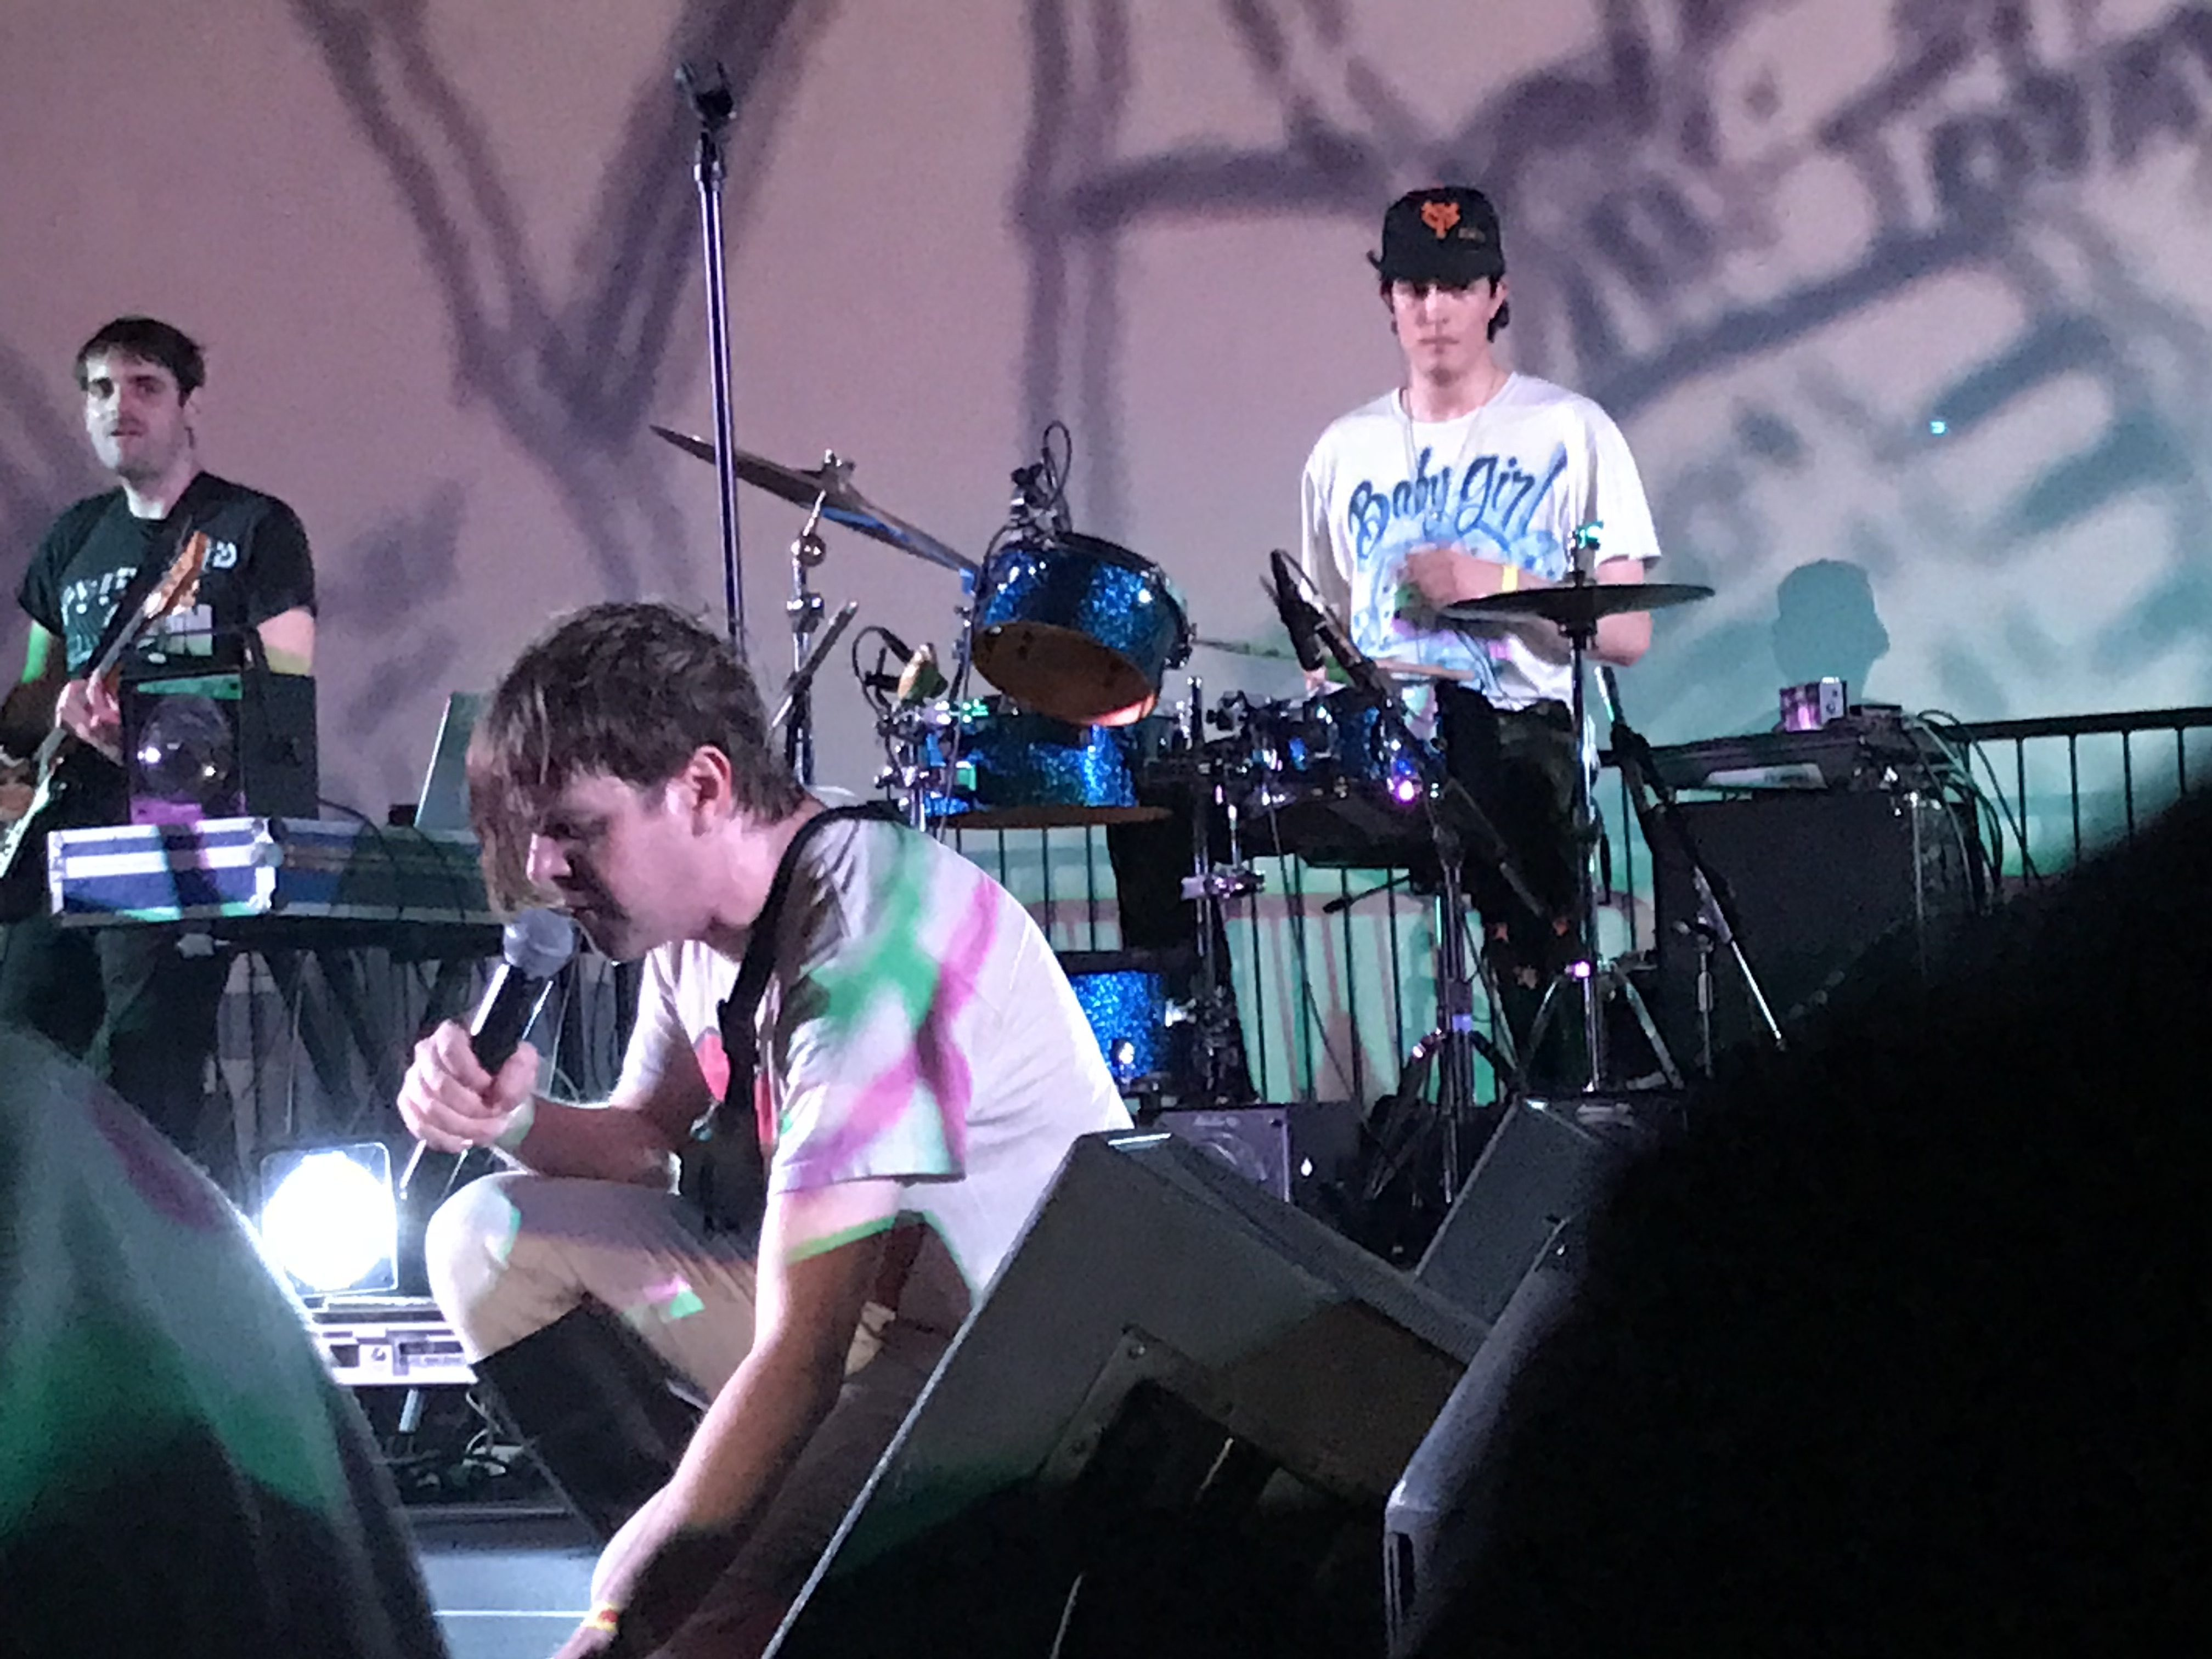 A Serendipitous Night With Ariel Pink and DIIV - KCPR